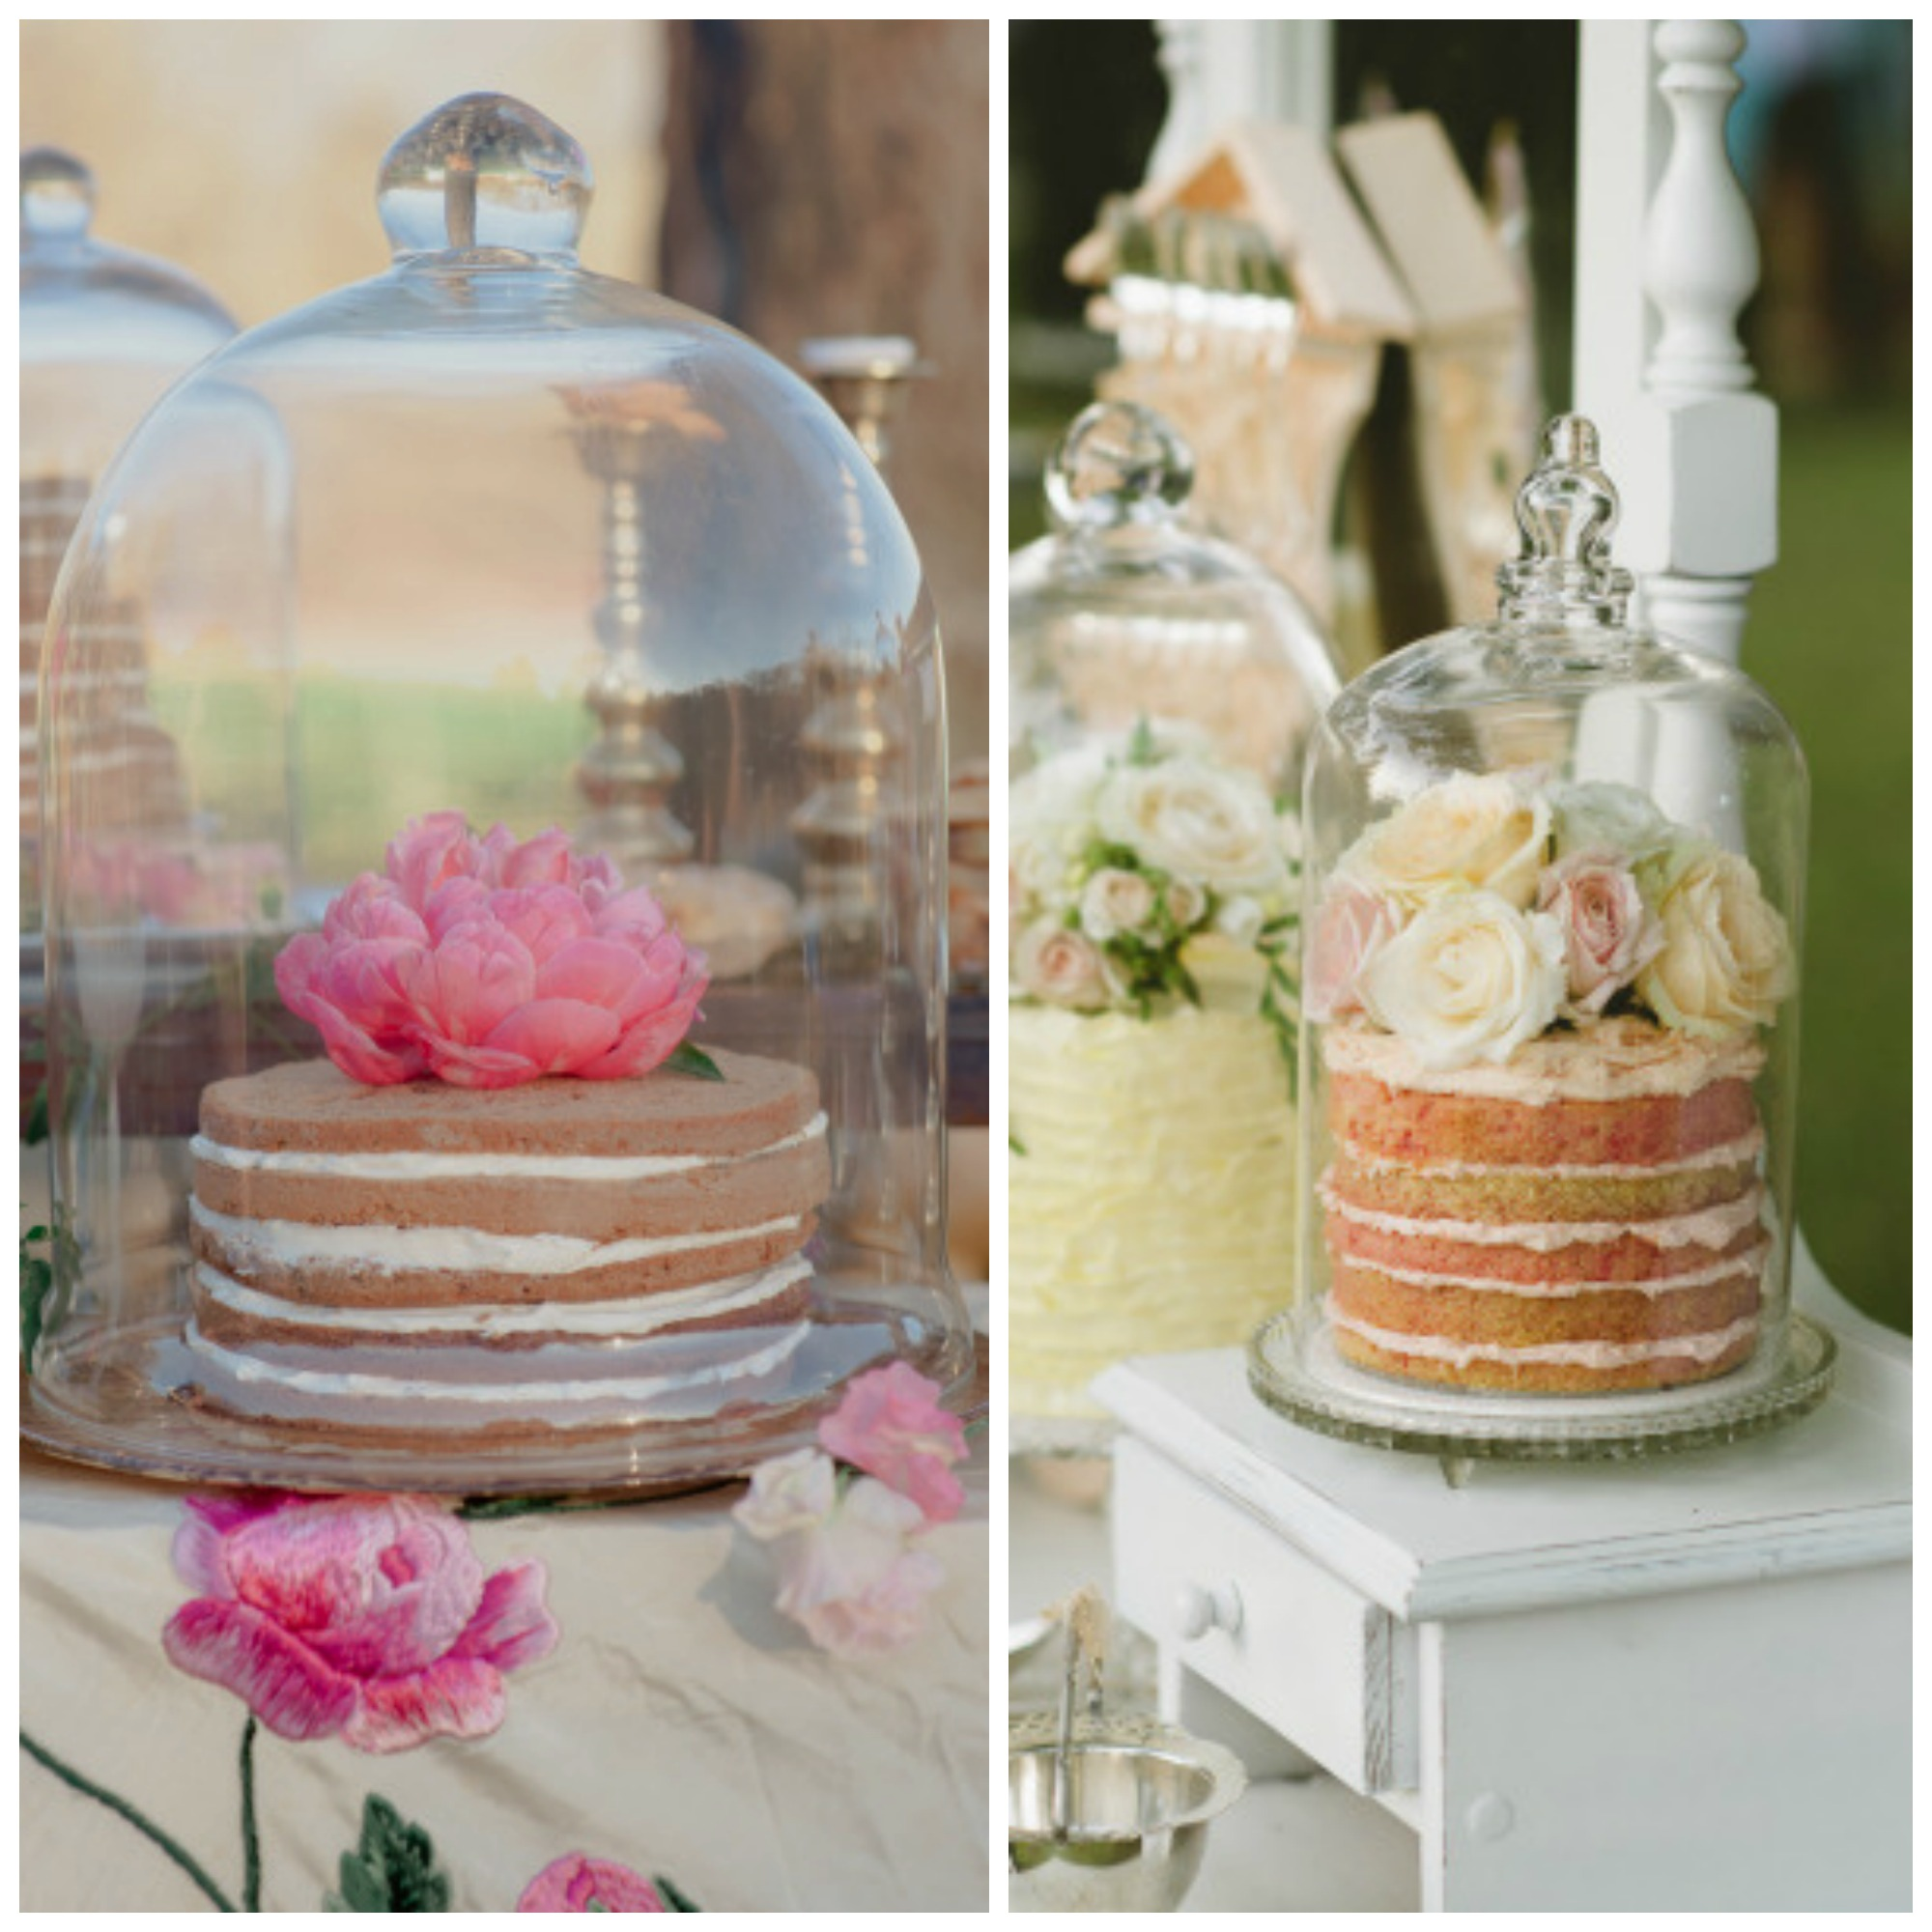 Wedding Cakes - The Naked Truth